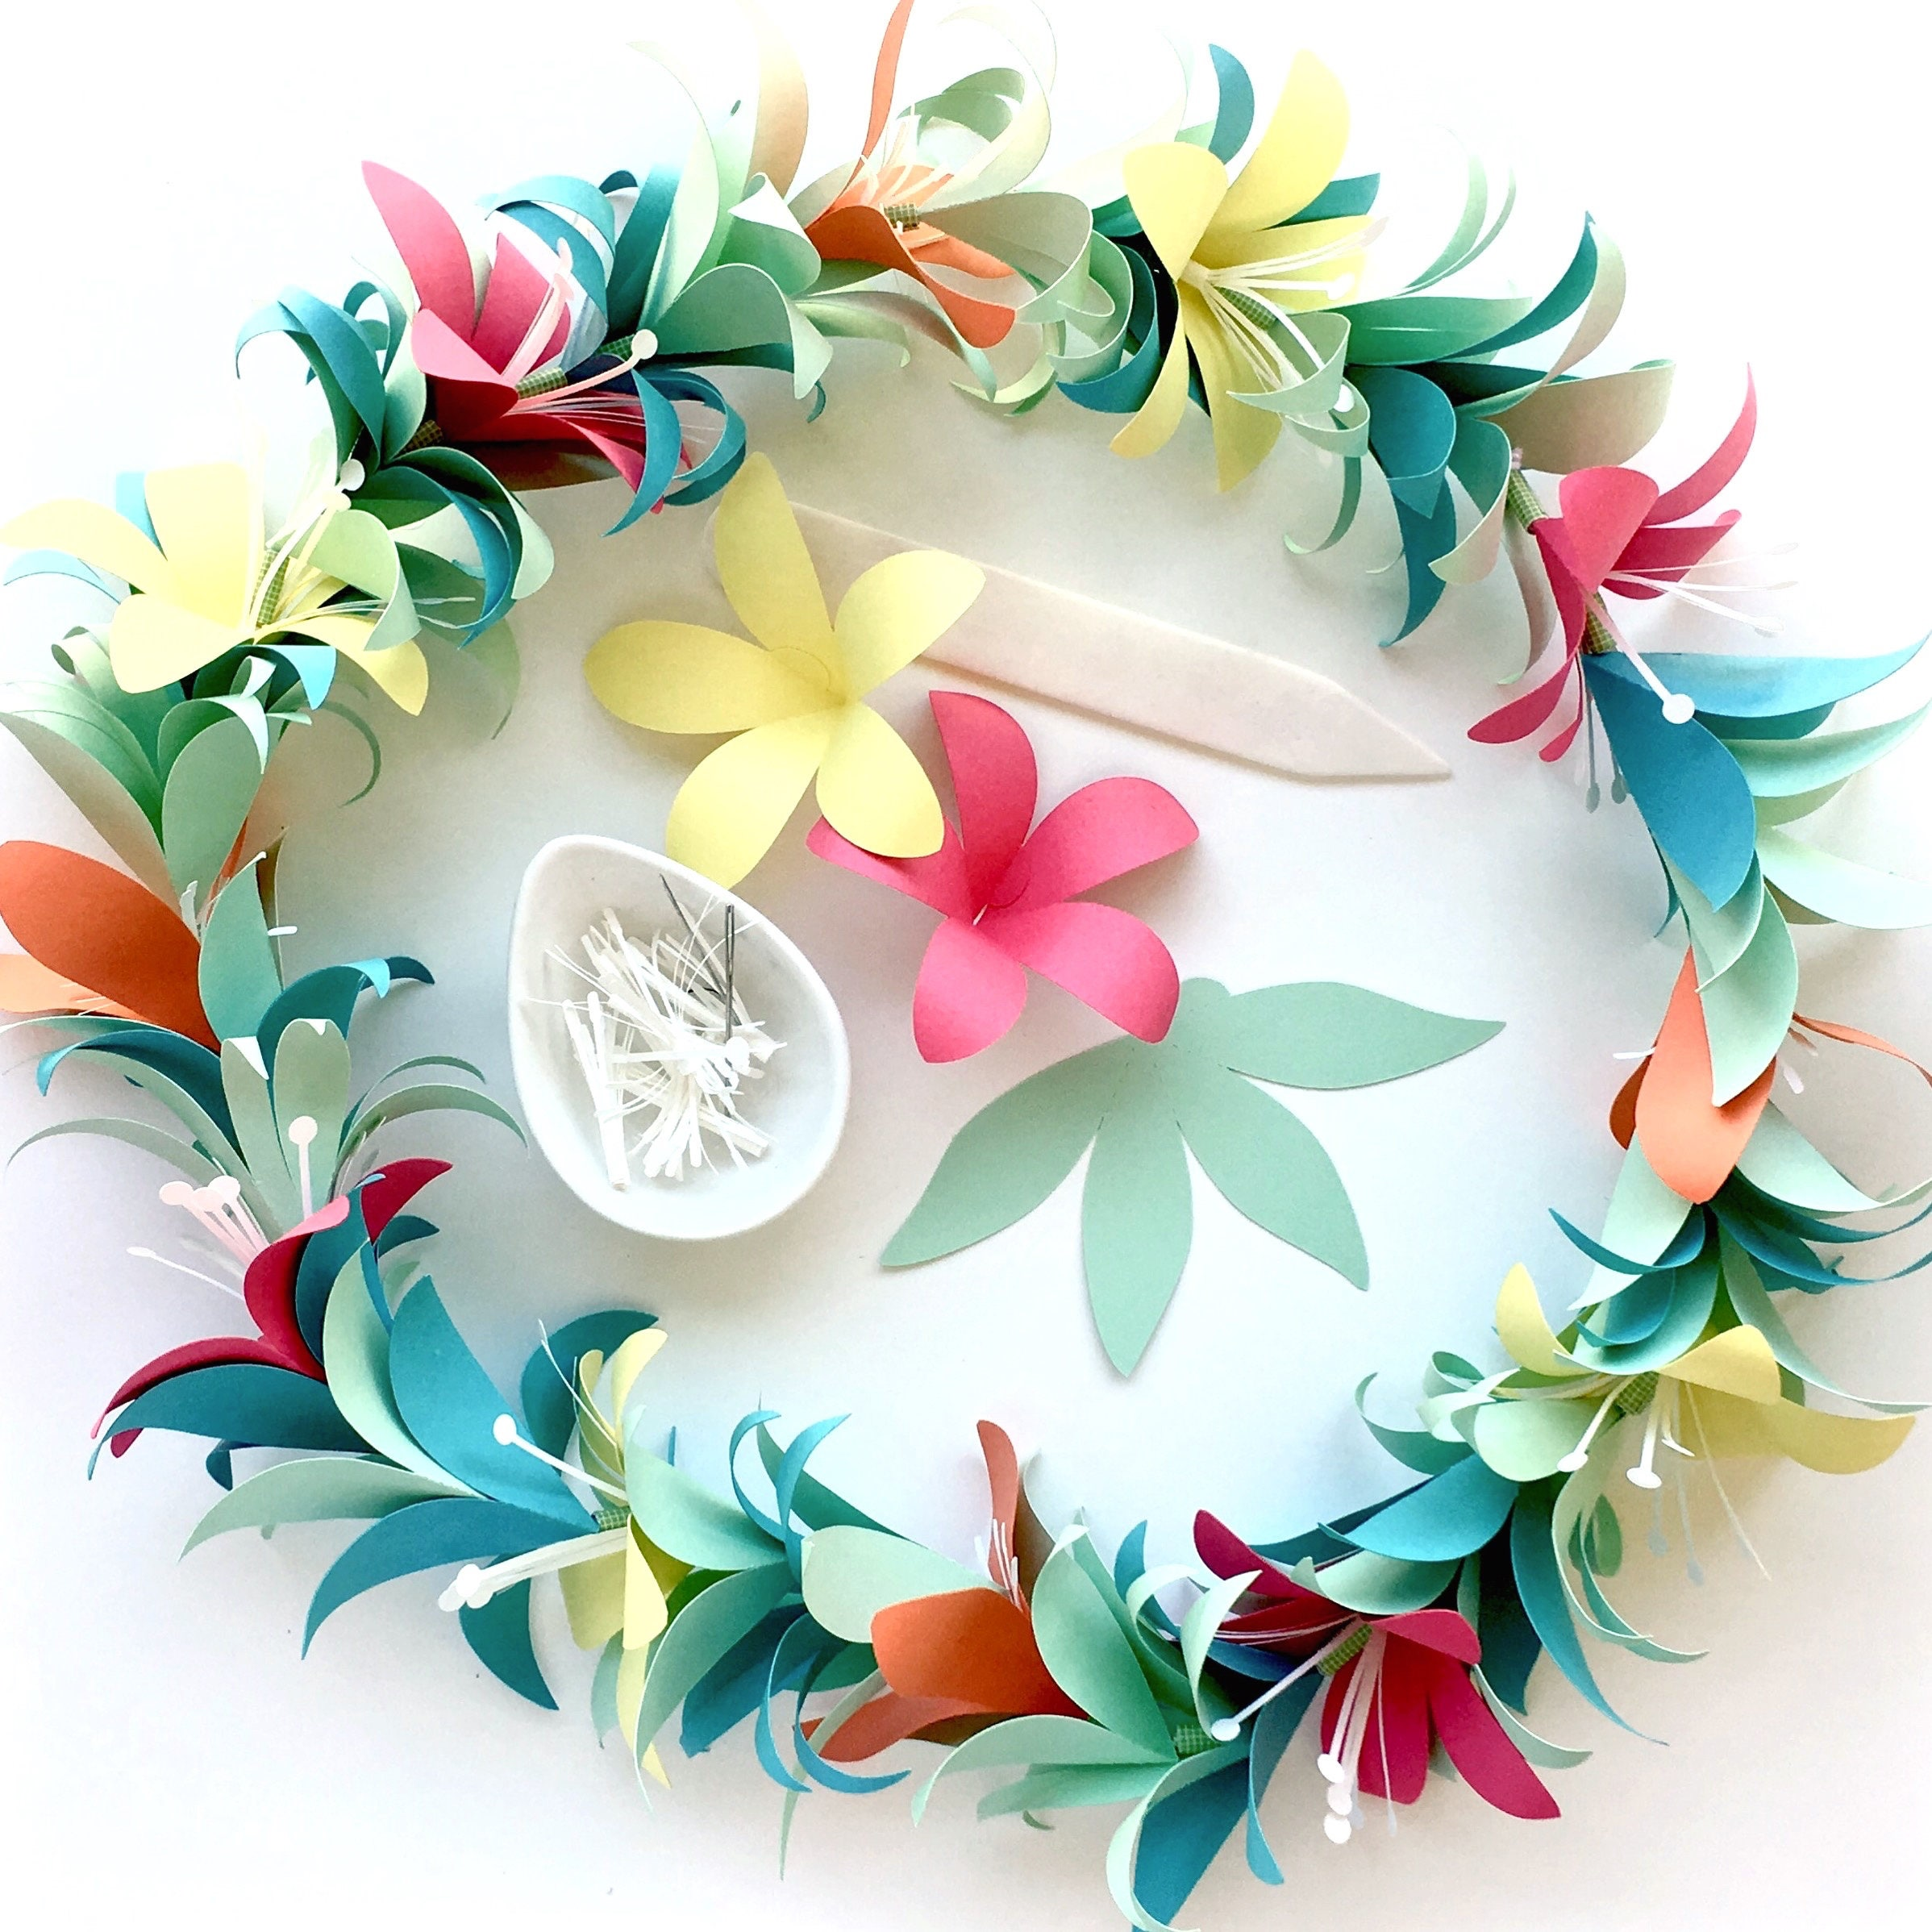 Flower Garland Diy Templates For Silhouette Cricut Explore Or Etsy